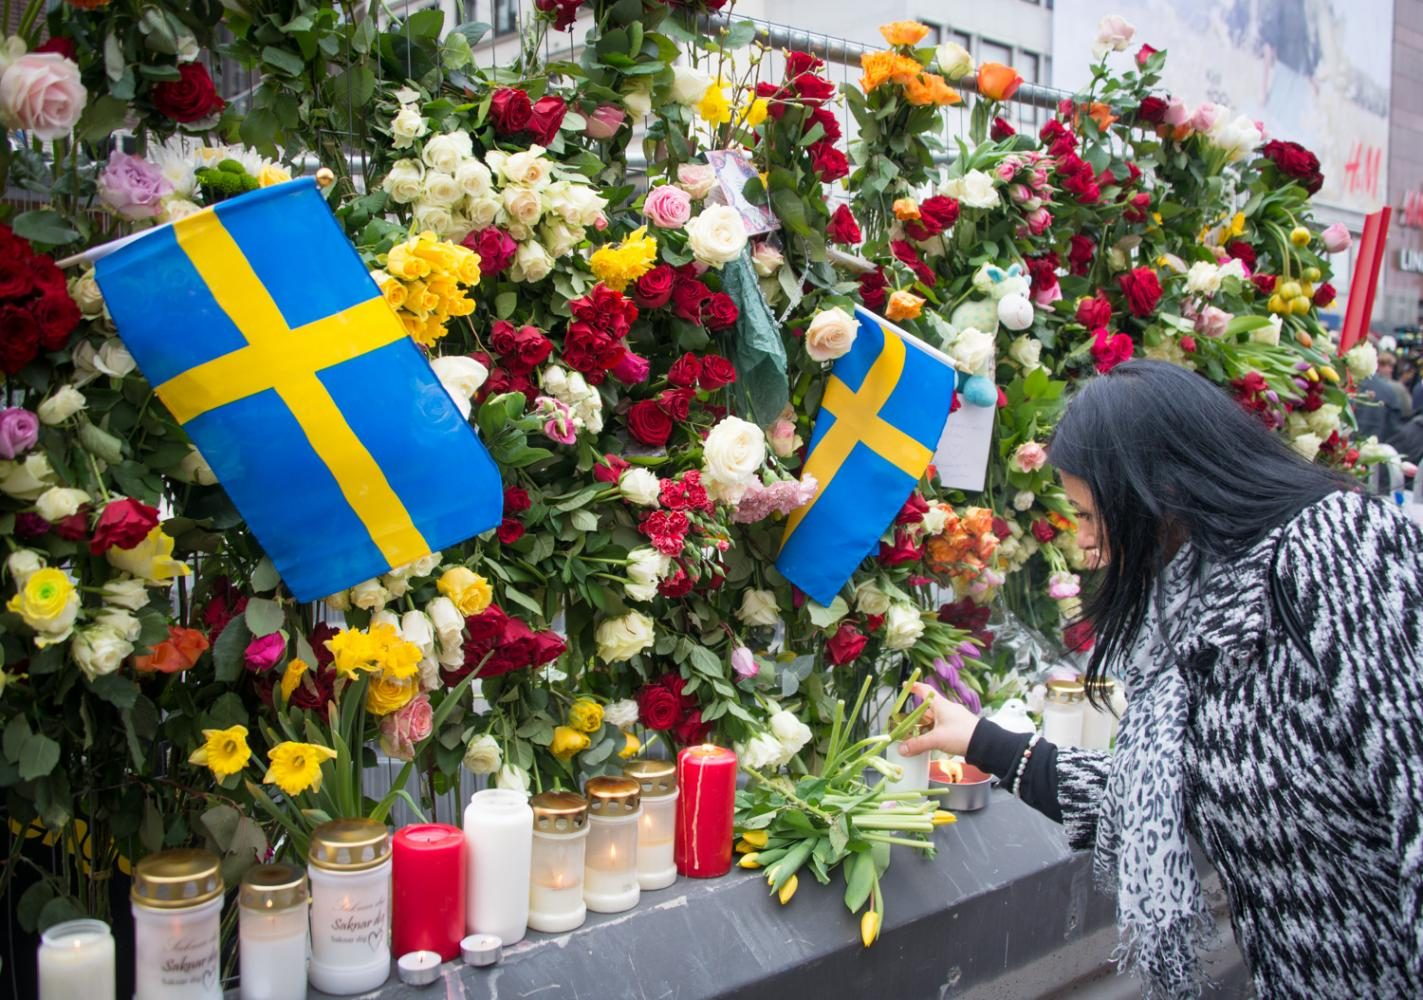 The+day+after+the+terrorist+attack+in+Stockholm+%28Photo+provided+by+By+Frankie+Fouganthin%29.